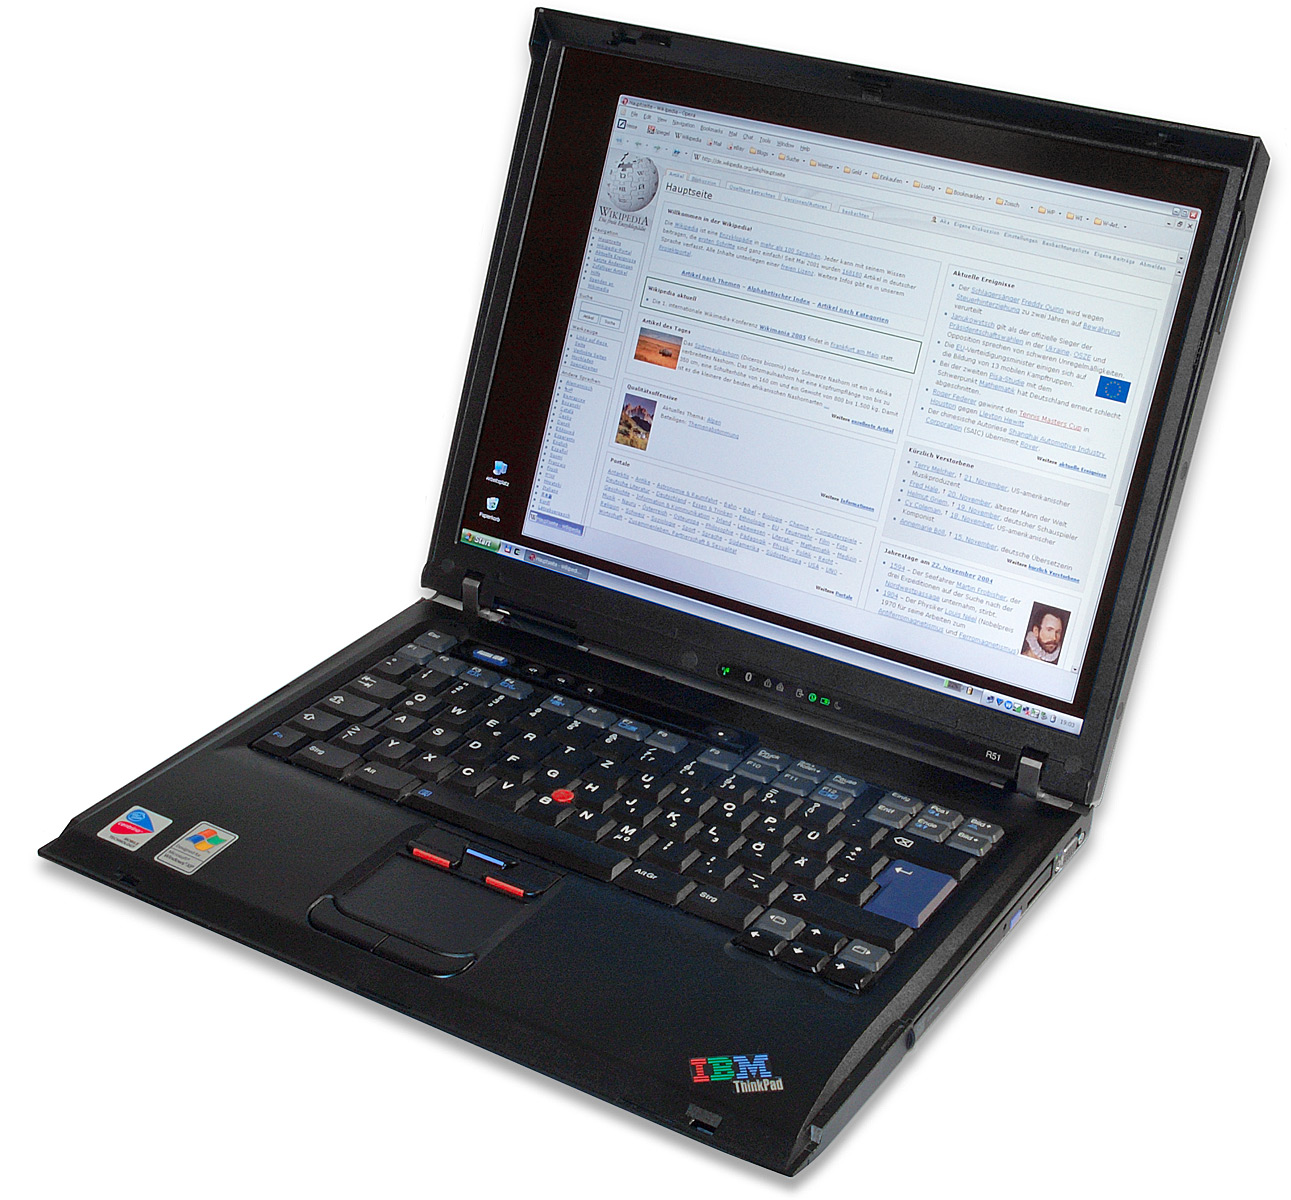 Descripción IBM Thinkpad R51.jpg